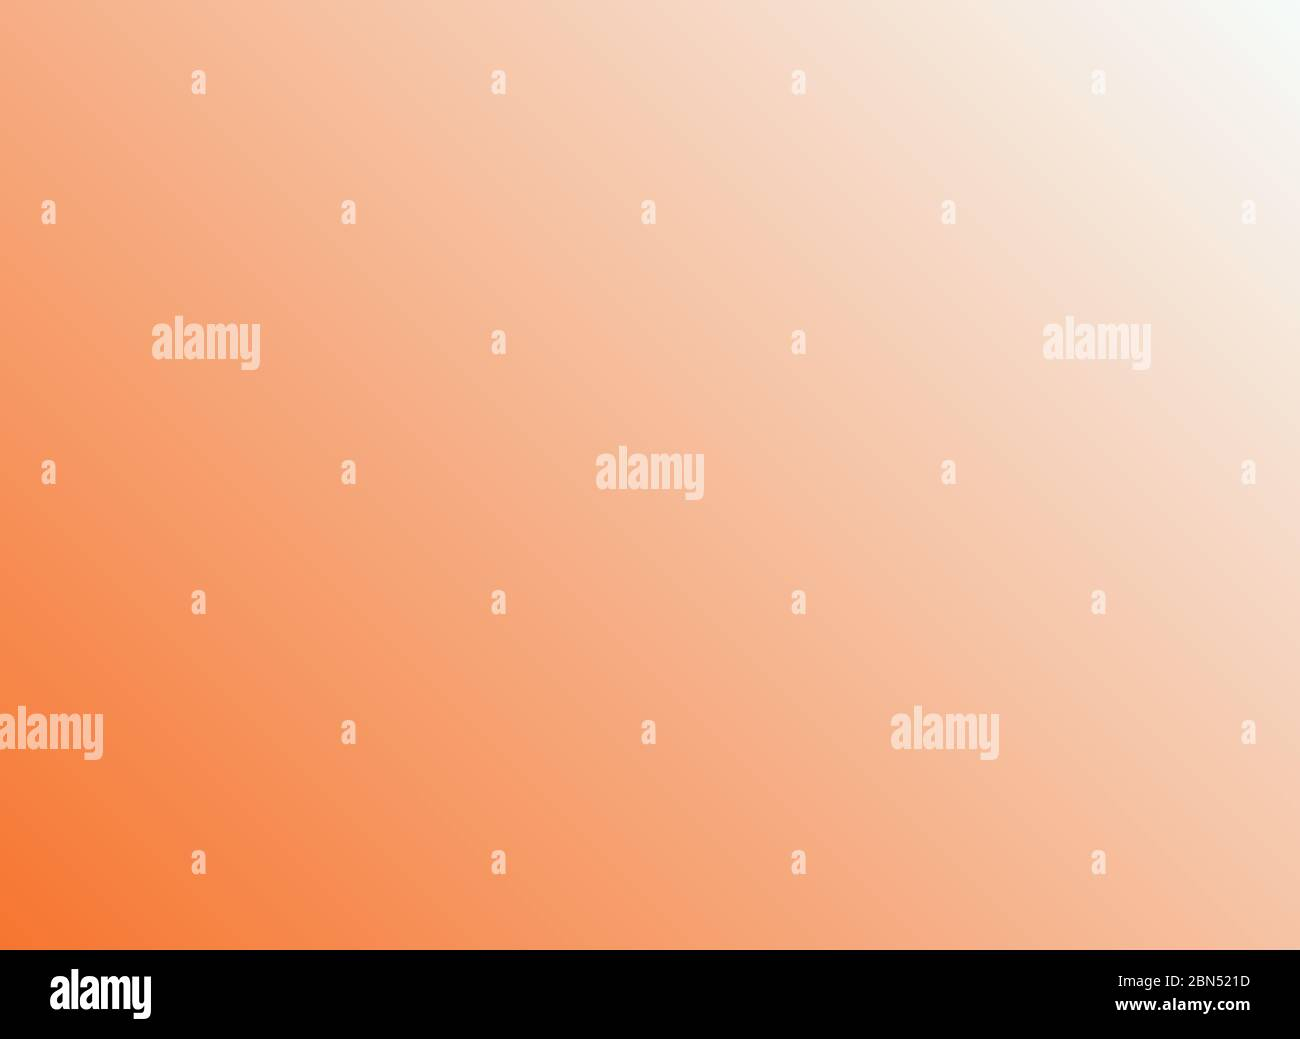 Pastel Orange Background With Ombre Effect Color Gradient Peach Backdrop Wallpaper Graphic Subtle Muted Stock Photo Alamy